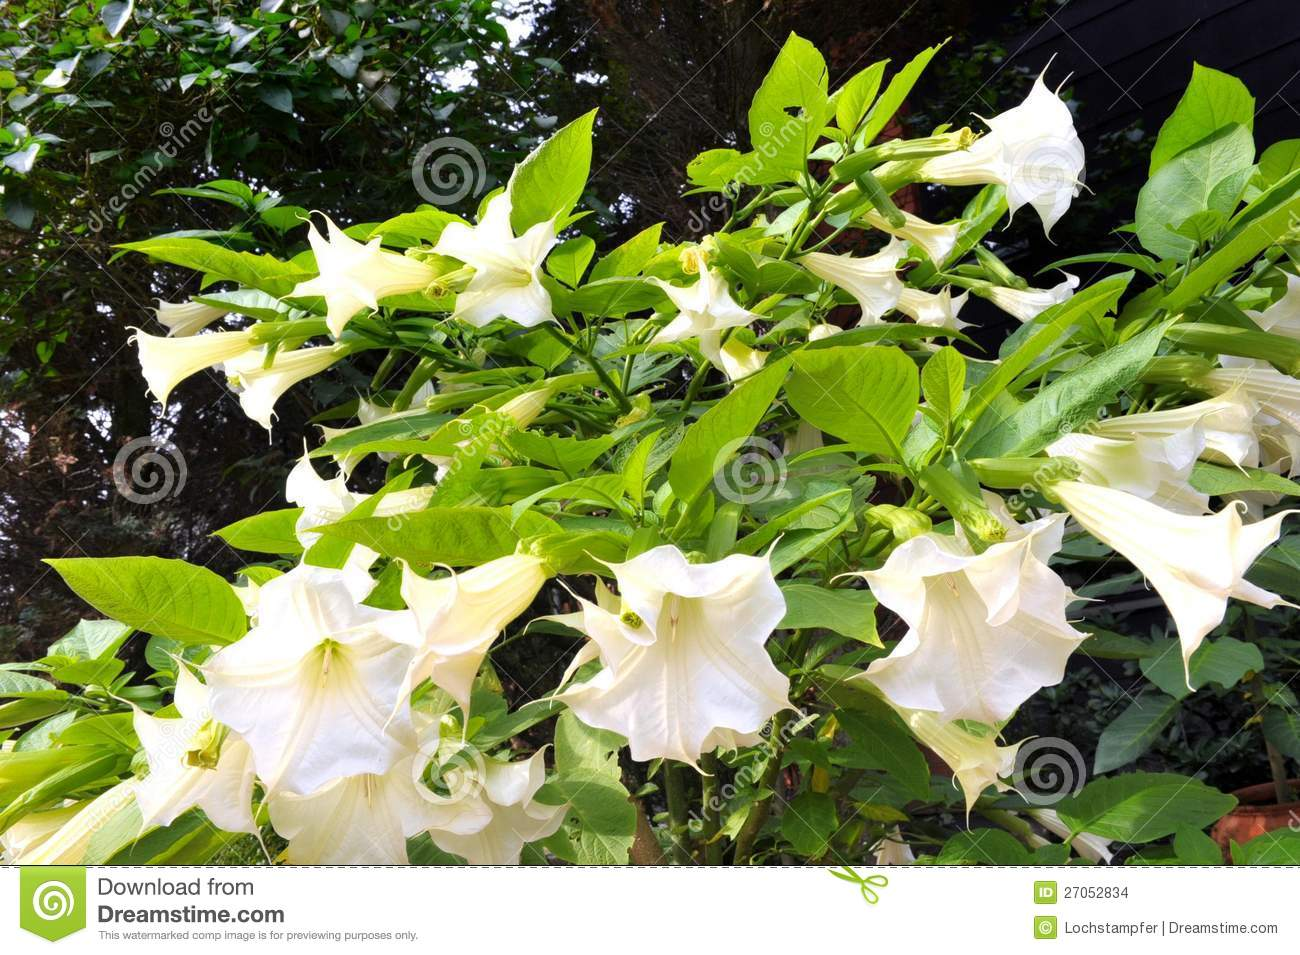 White angel trumpet stock photo image of drugs flower 27052834 download white angel trumpet stock photo image of drugs flower 27052834 mightylinksfo